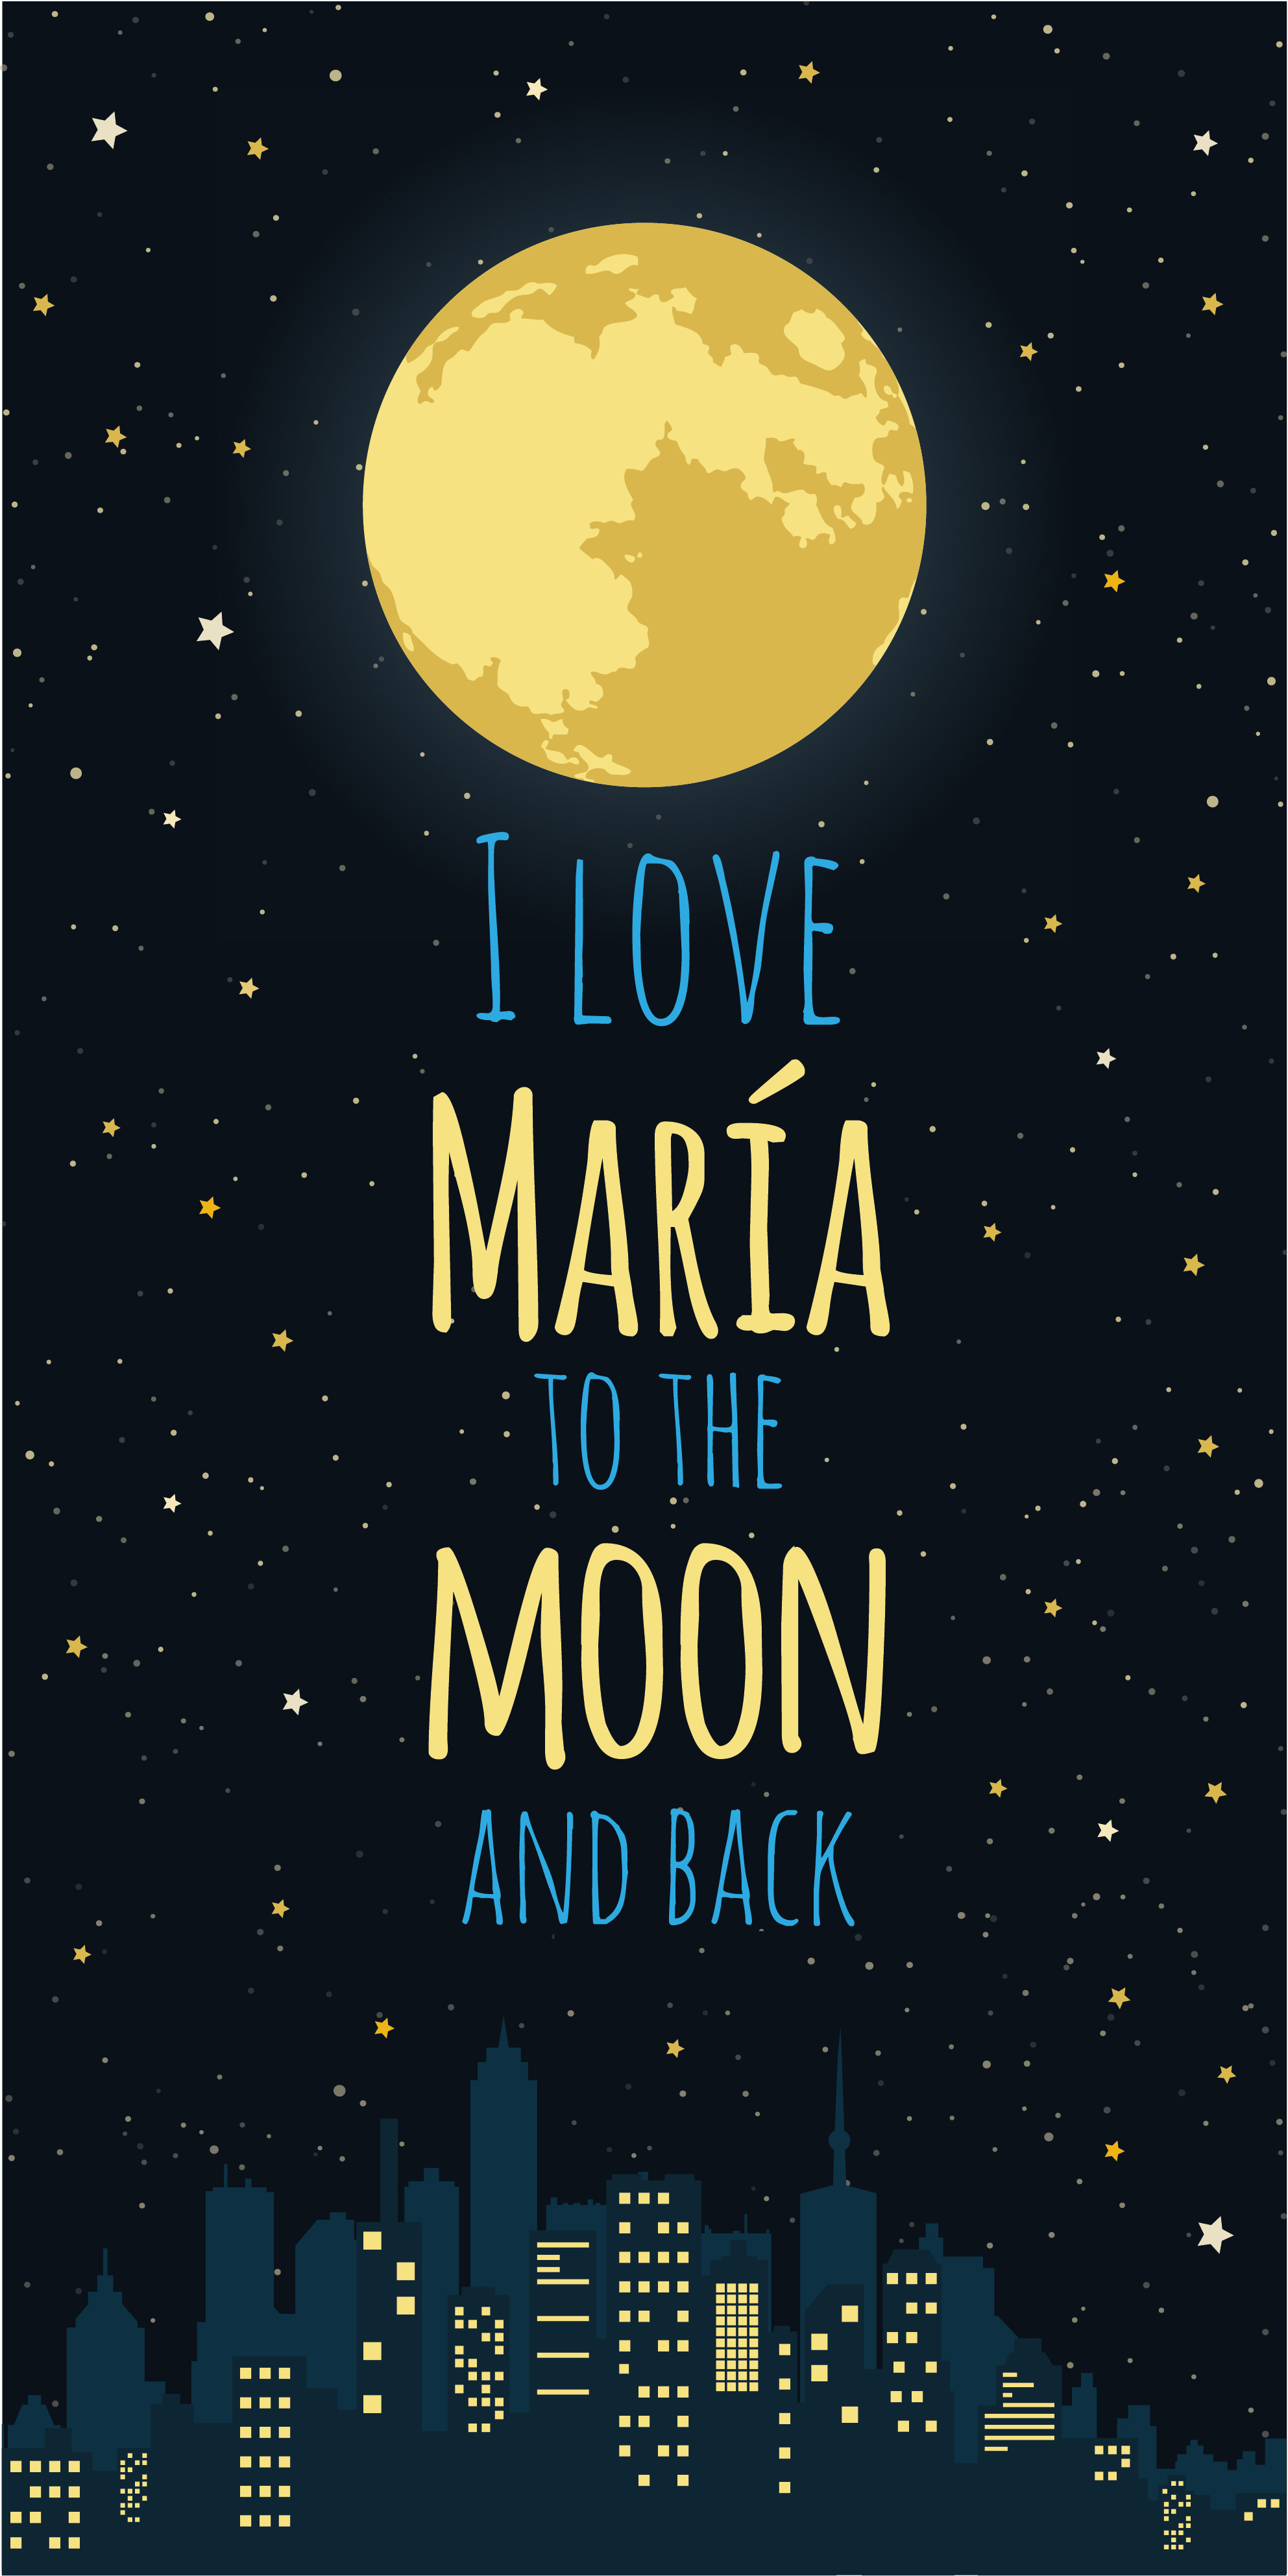 I love …. to the moon and back